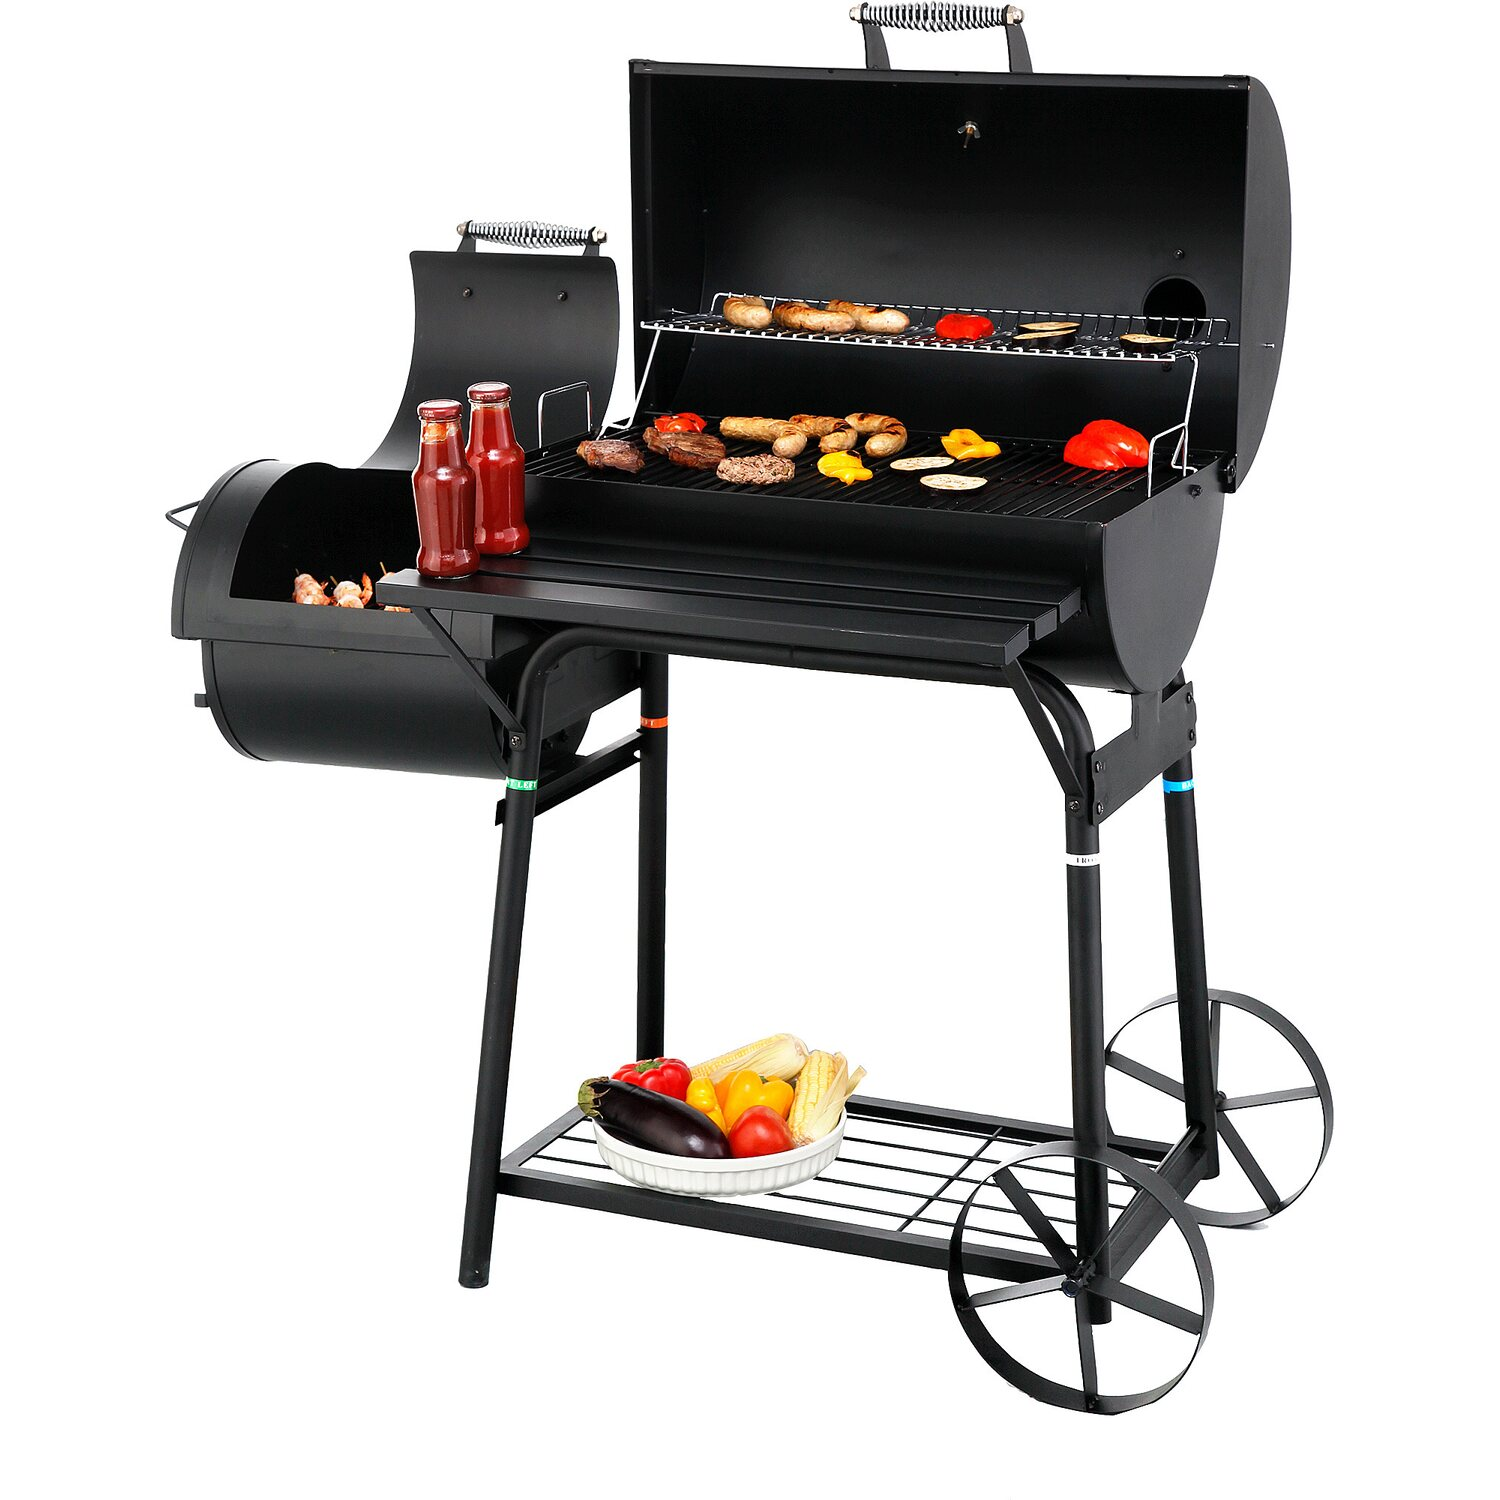 tepro holzkohle grill smoker biloxi mit seitlicher brennkammer kaufen bei obi. Black Bedroom Furniture Sets. Home Design Ideas